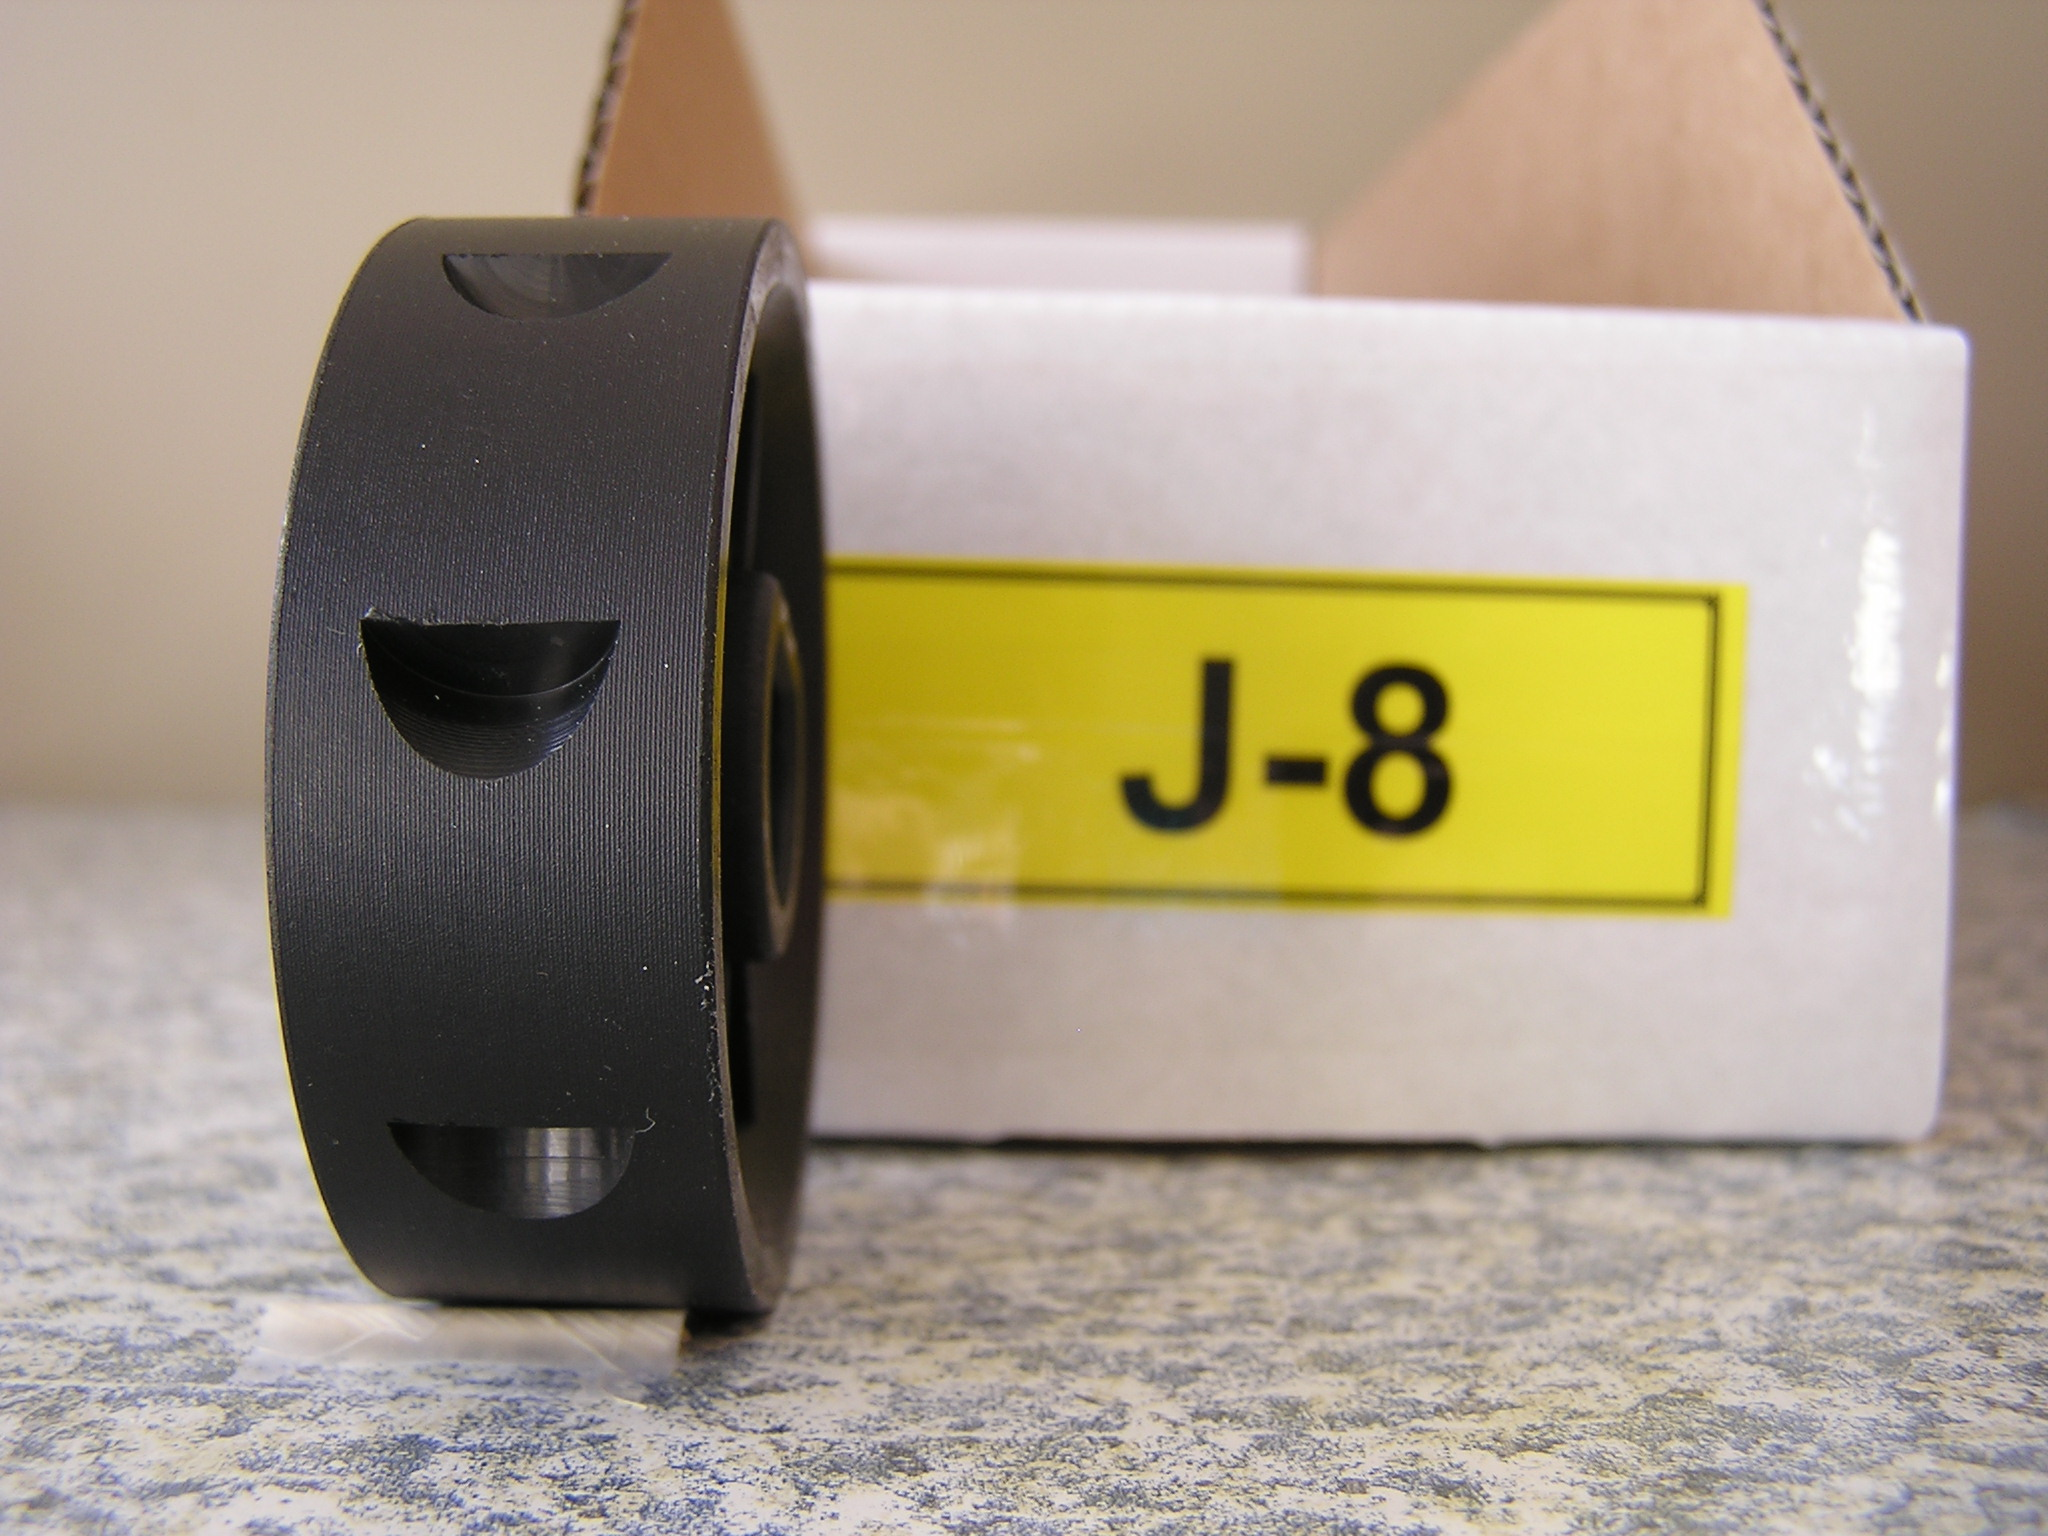 J-8 Roller for Jang Seeder, 8 Thumbnail Shaped Slots, 12 mm at Large End